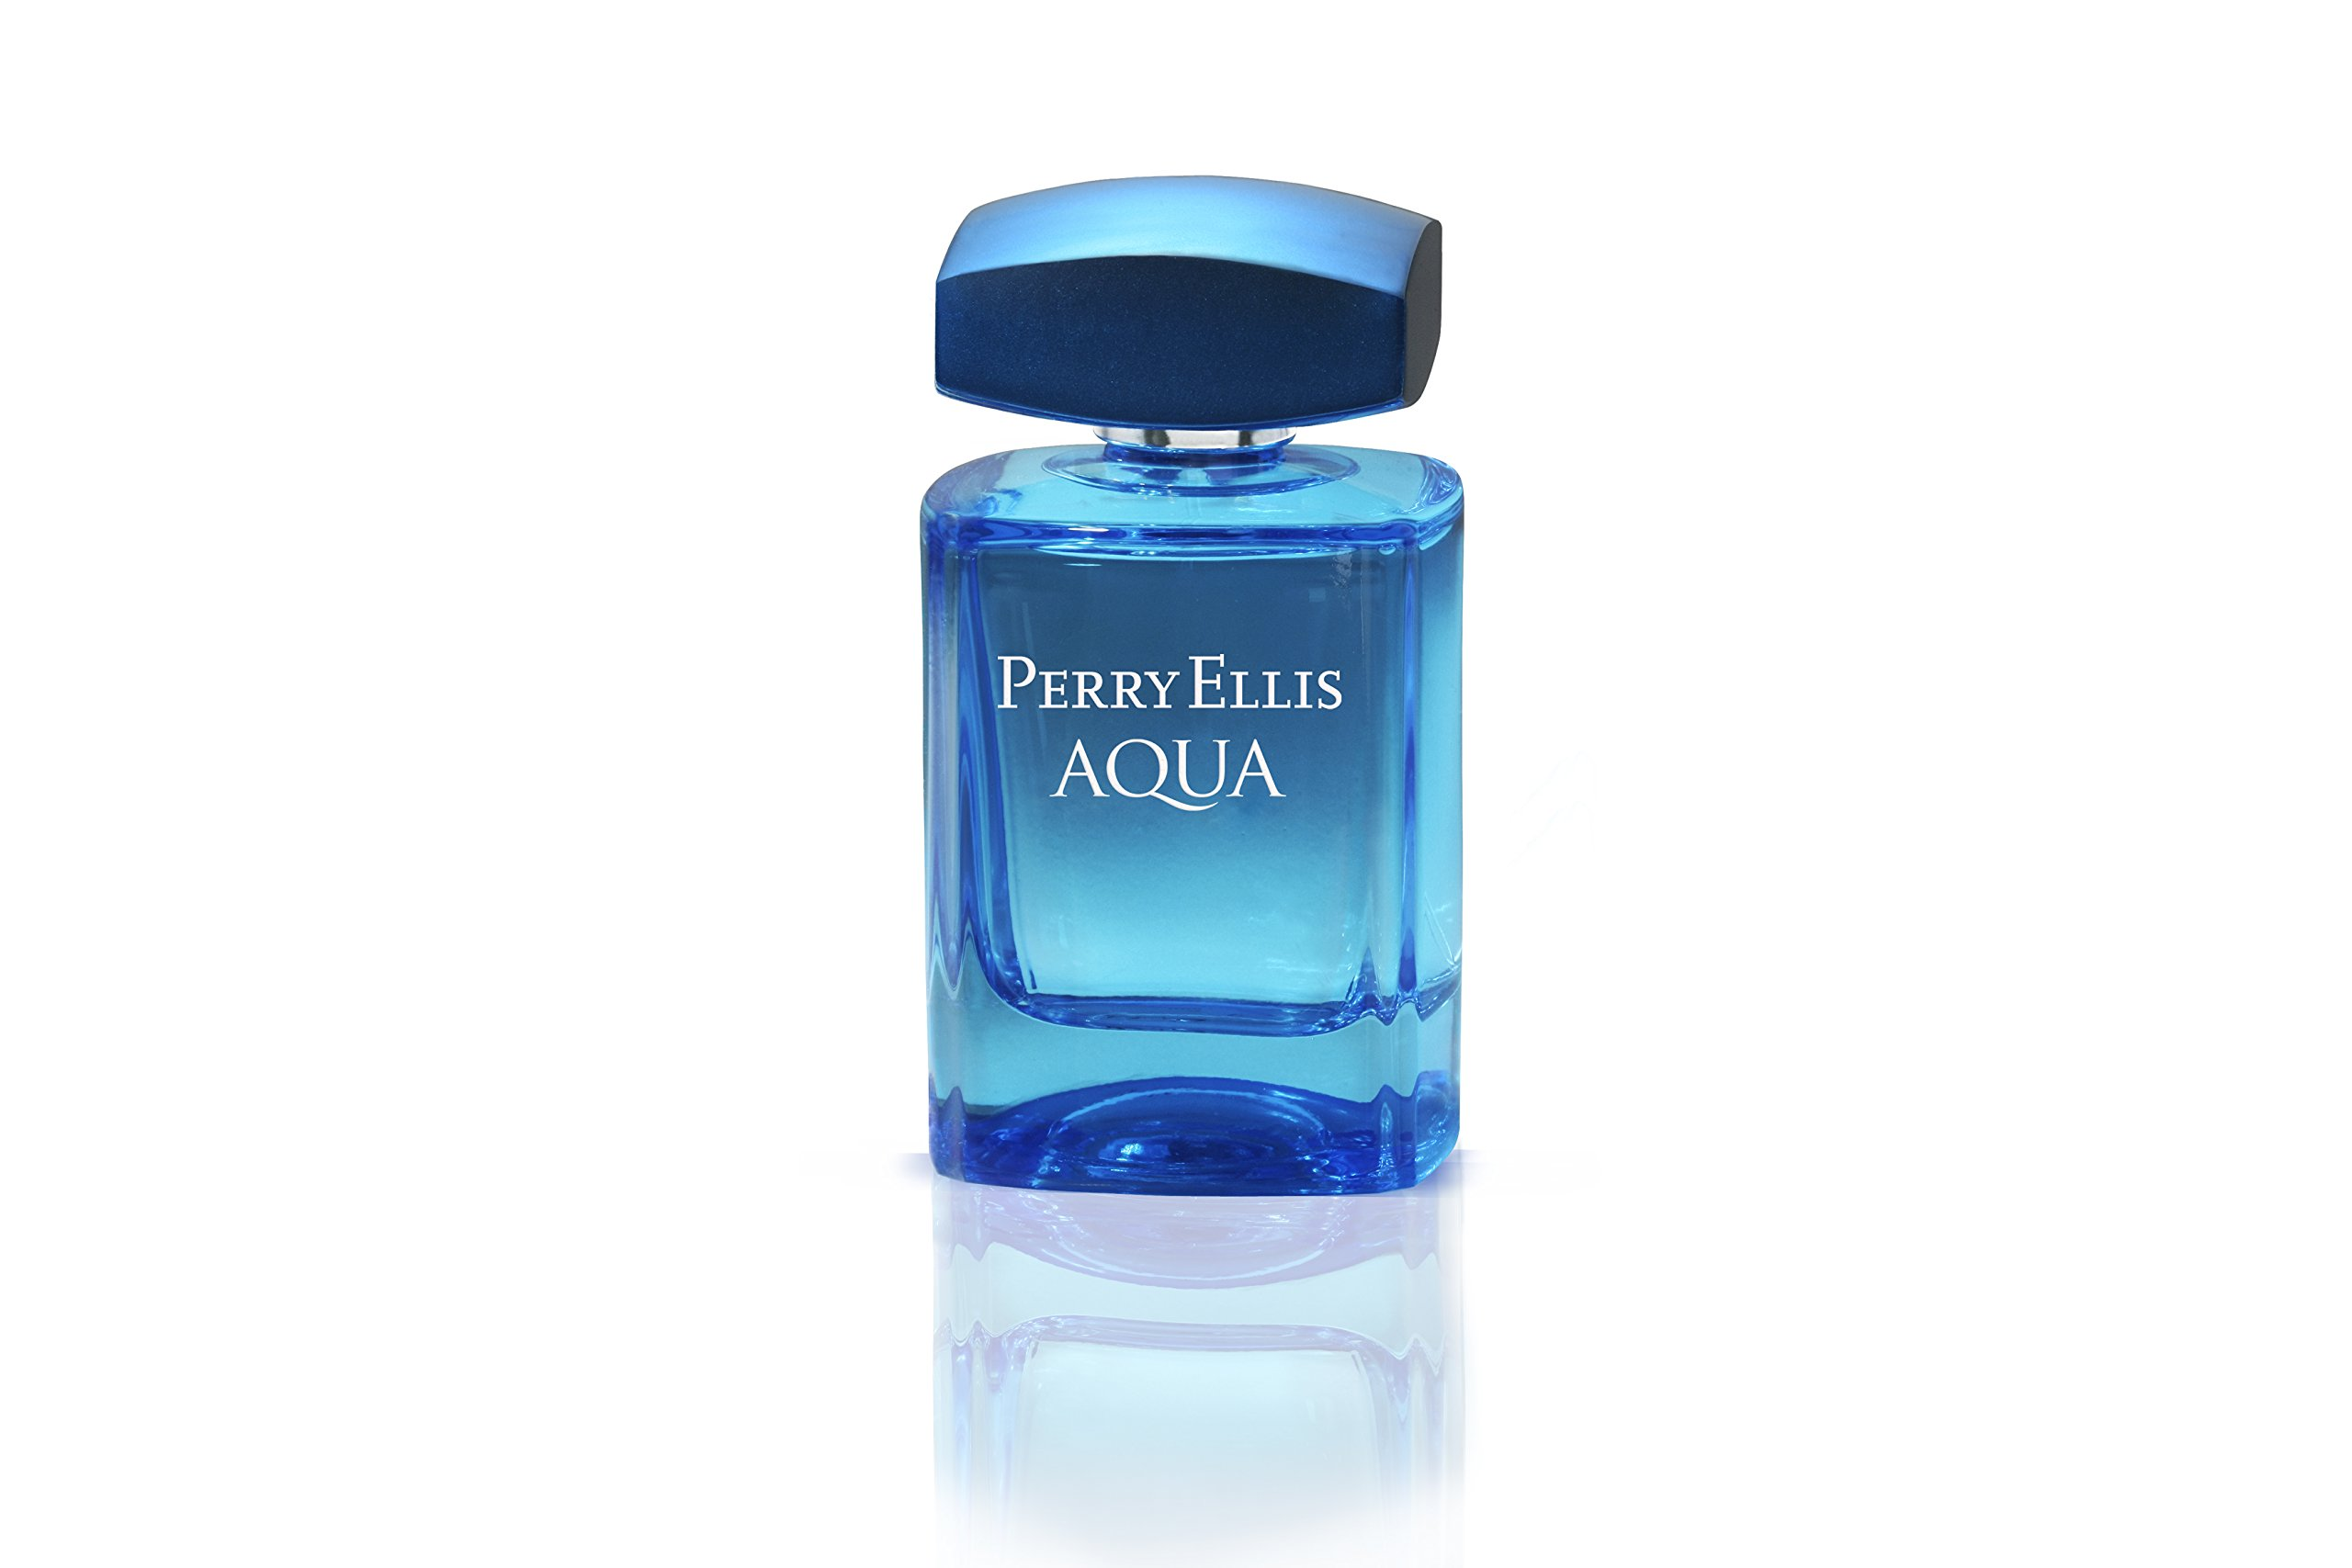 Perry Ellis Aqua Eau de Toilette Spray for Men, 3.4 Ounce